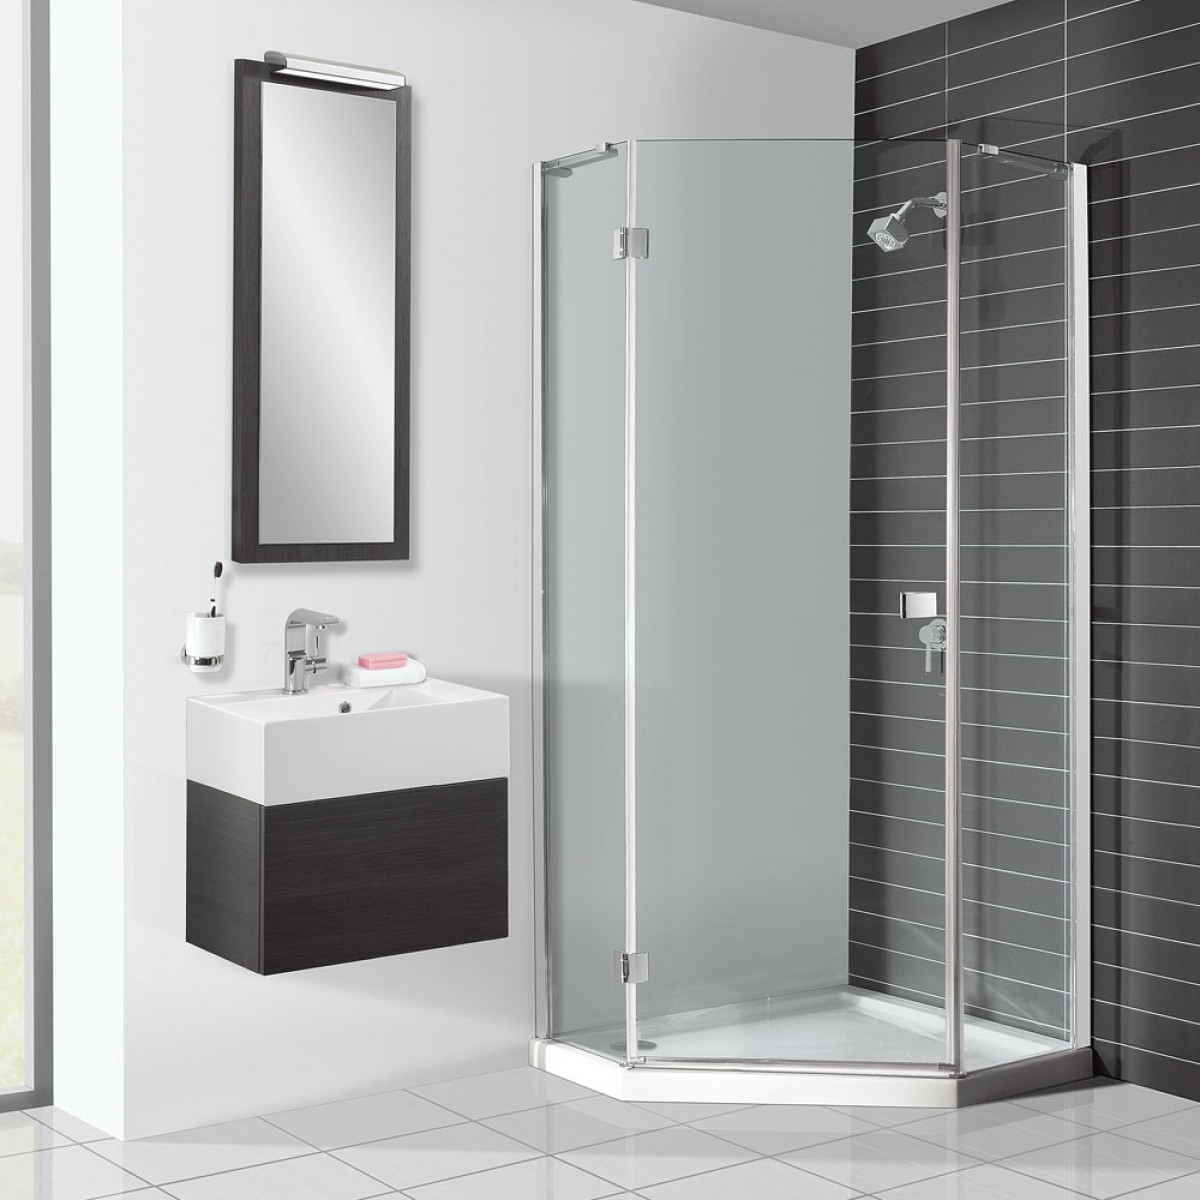 White and Grey Sink with Corner Shower